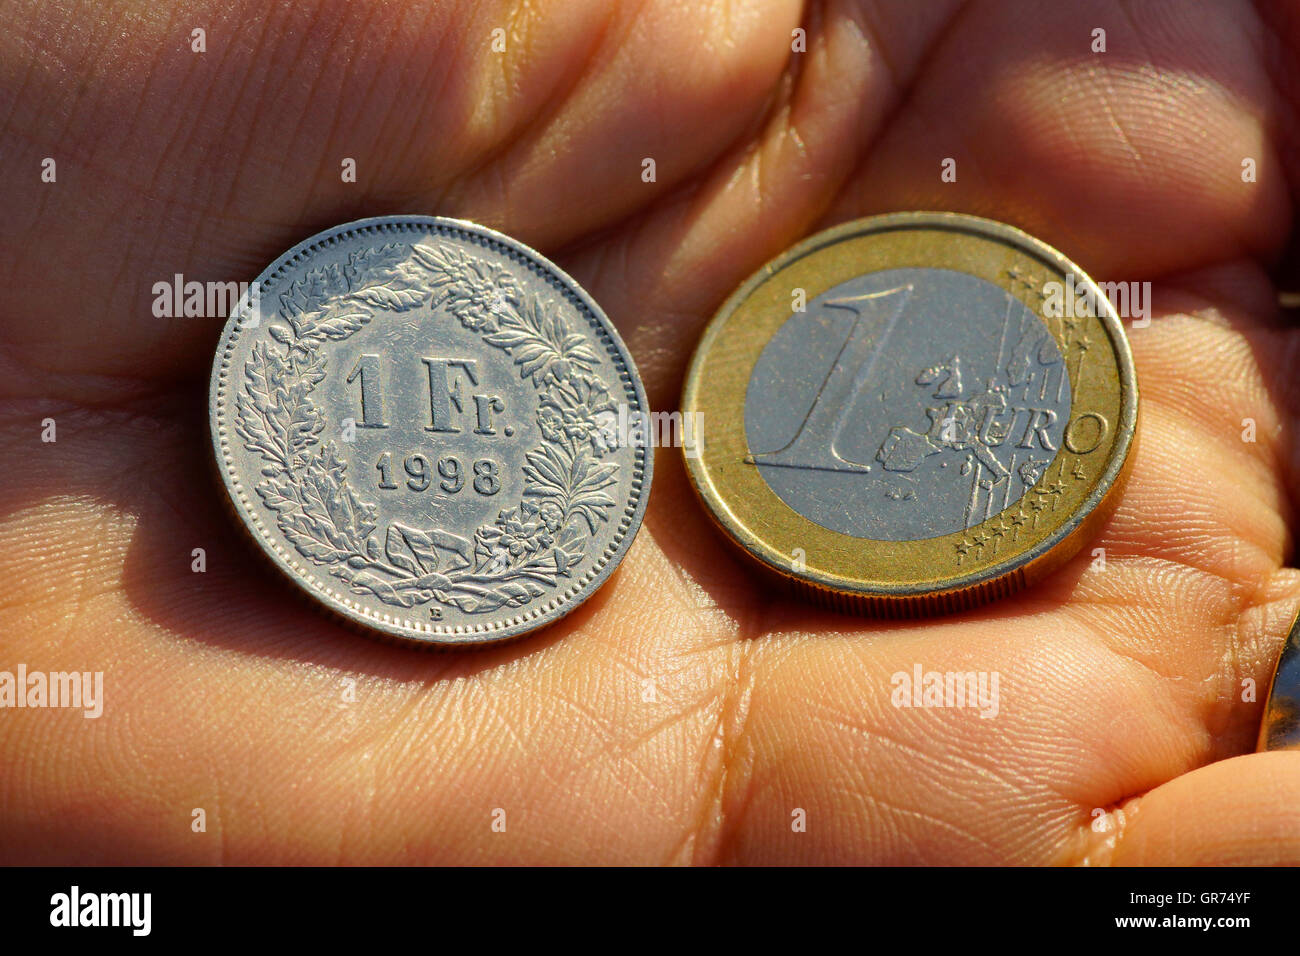 1 Euro And 1 Chf - Stock Image